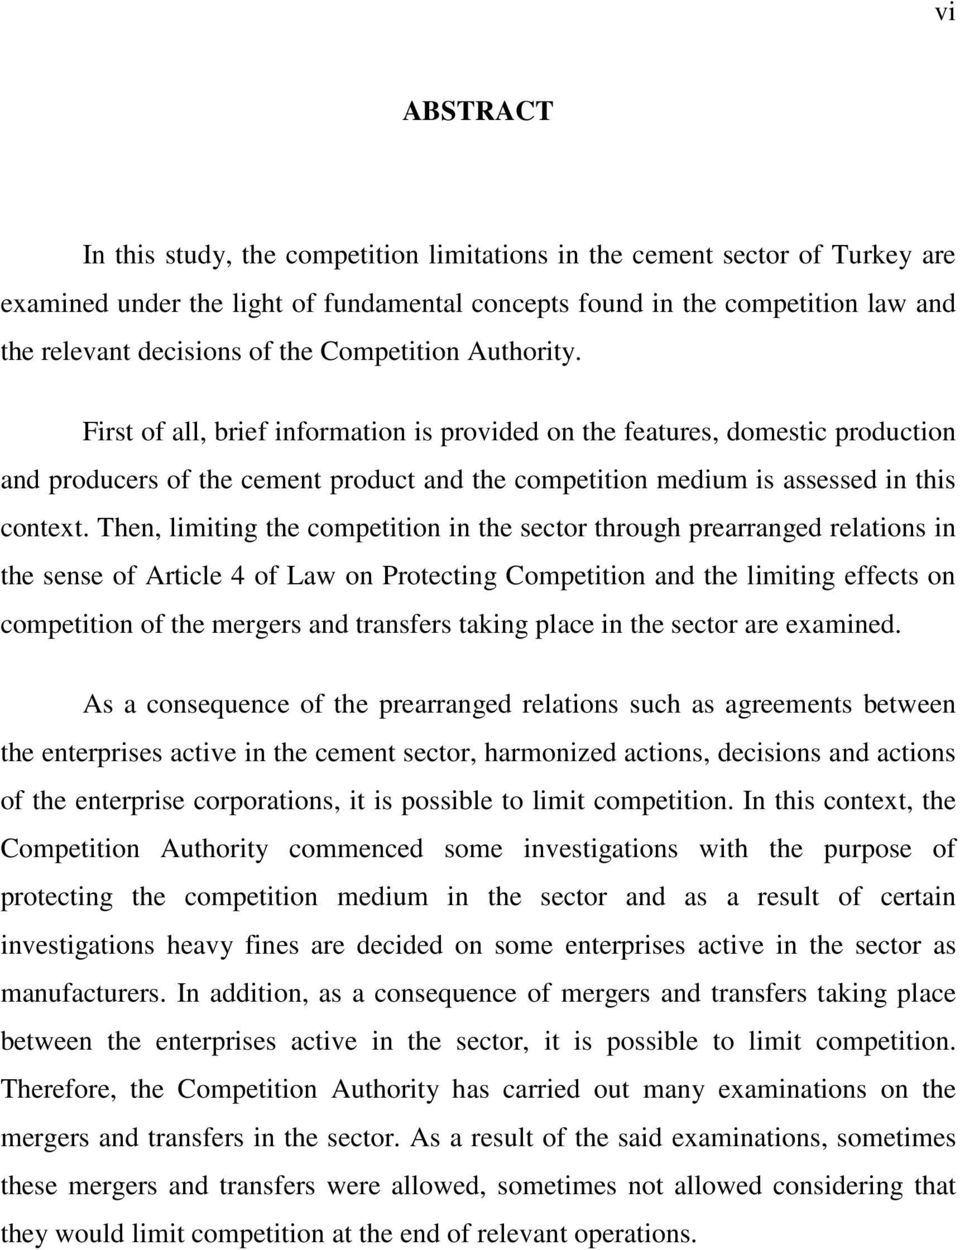 Then, limiting the competition in the sector through prearranged relations in the sense of Article 4 of Law on Protecting Competition and the limiting effects on competition of the mergers and